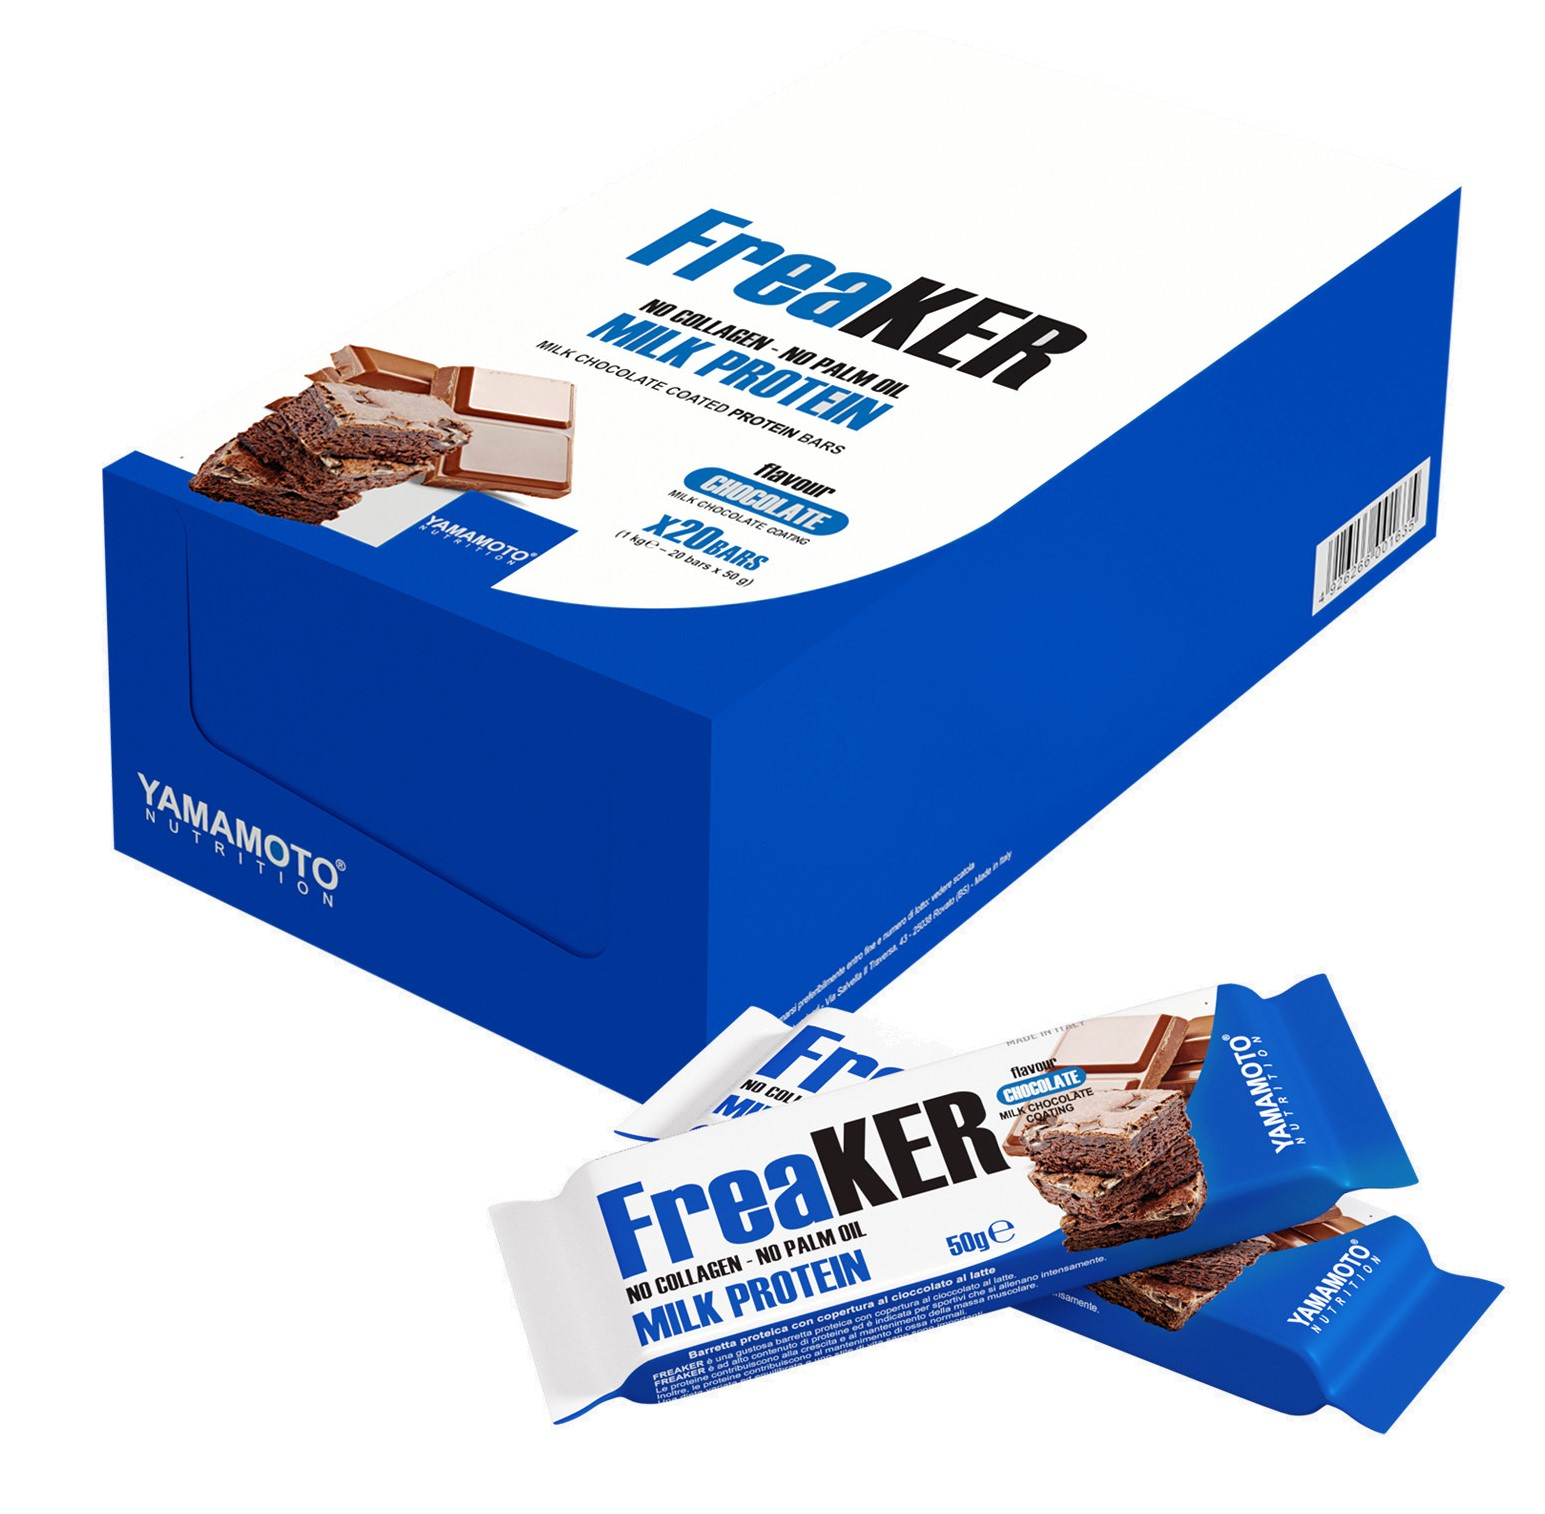 FreaKER, Chocolate with Milk Chocolate Coating - 20 x 50g versandkostenfrei/portofrei bestellen/kaufen